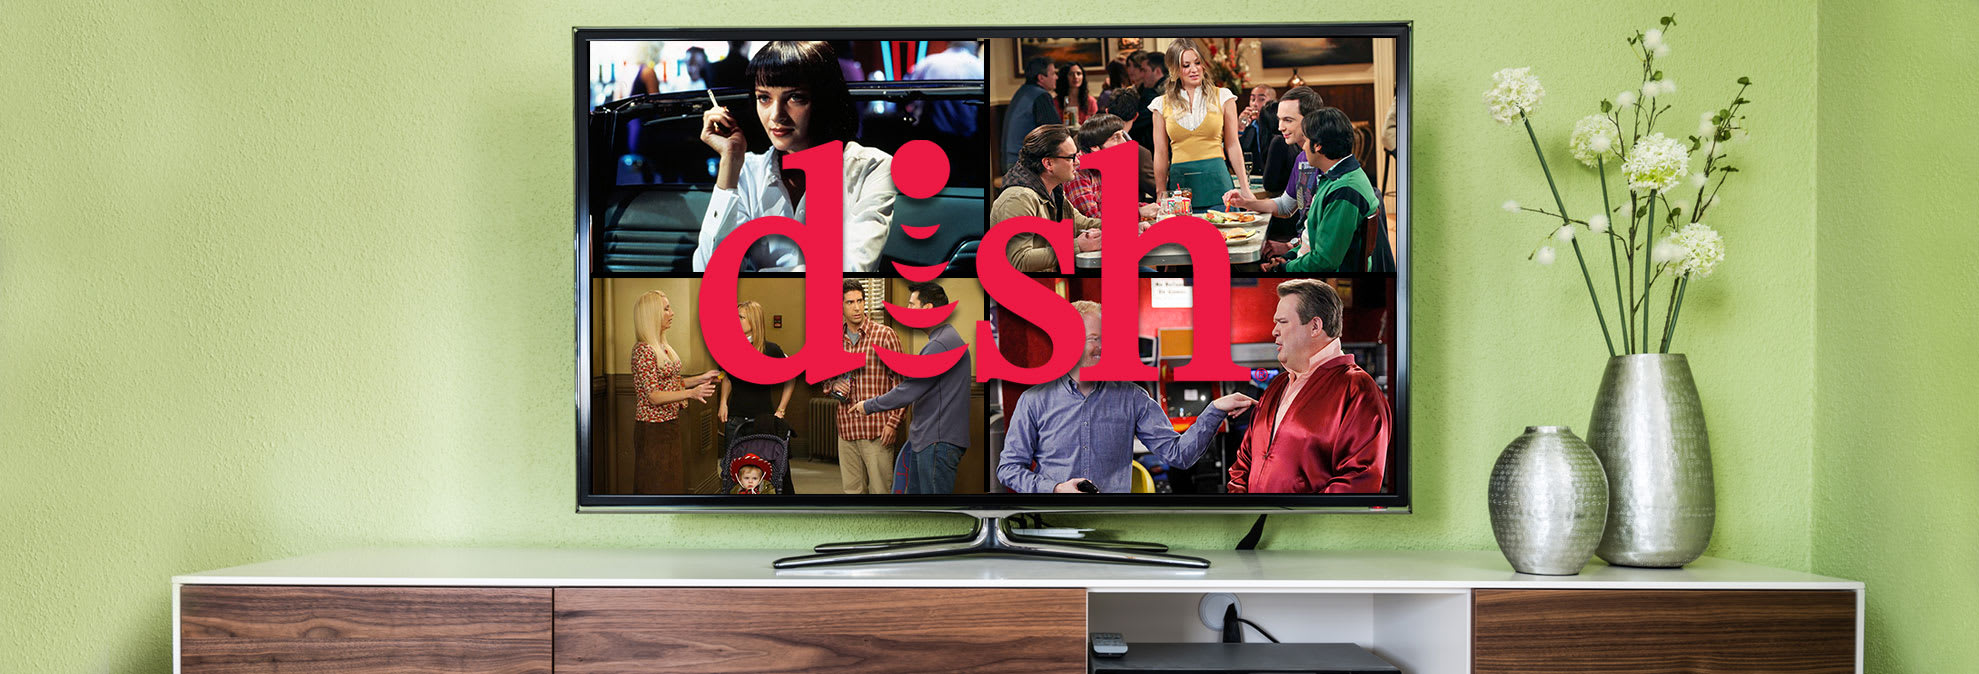 Dish TV Introduces New Satellite TV Flex Pack - Consumer Reports